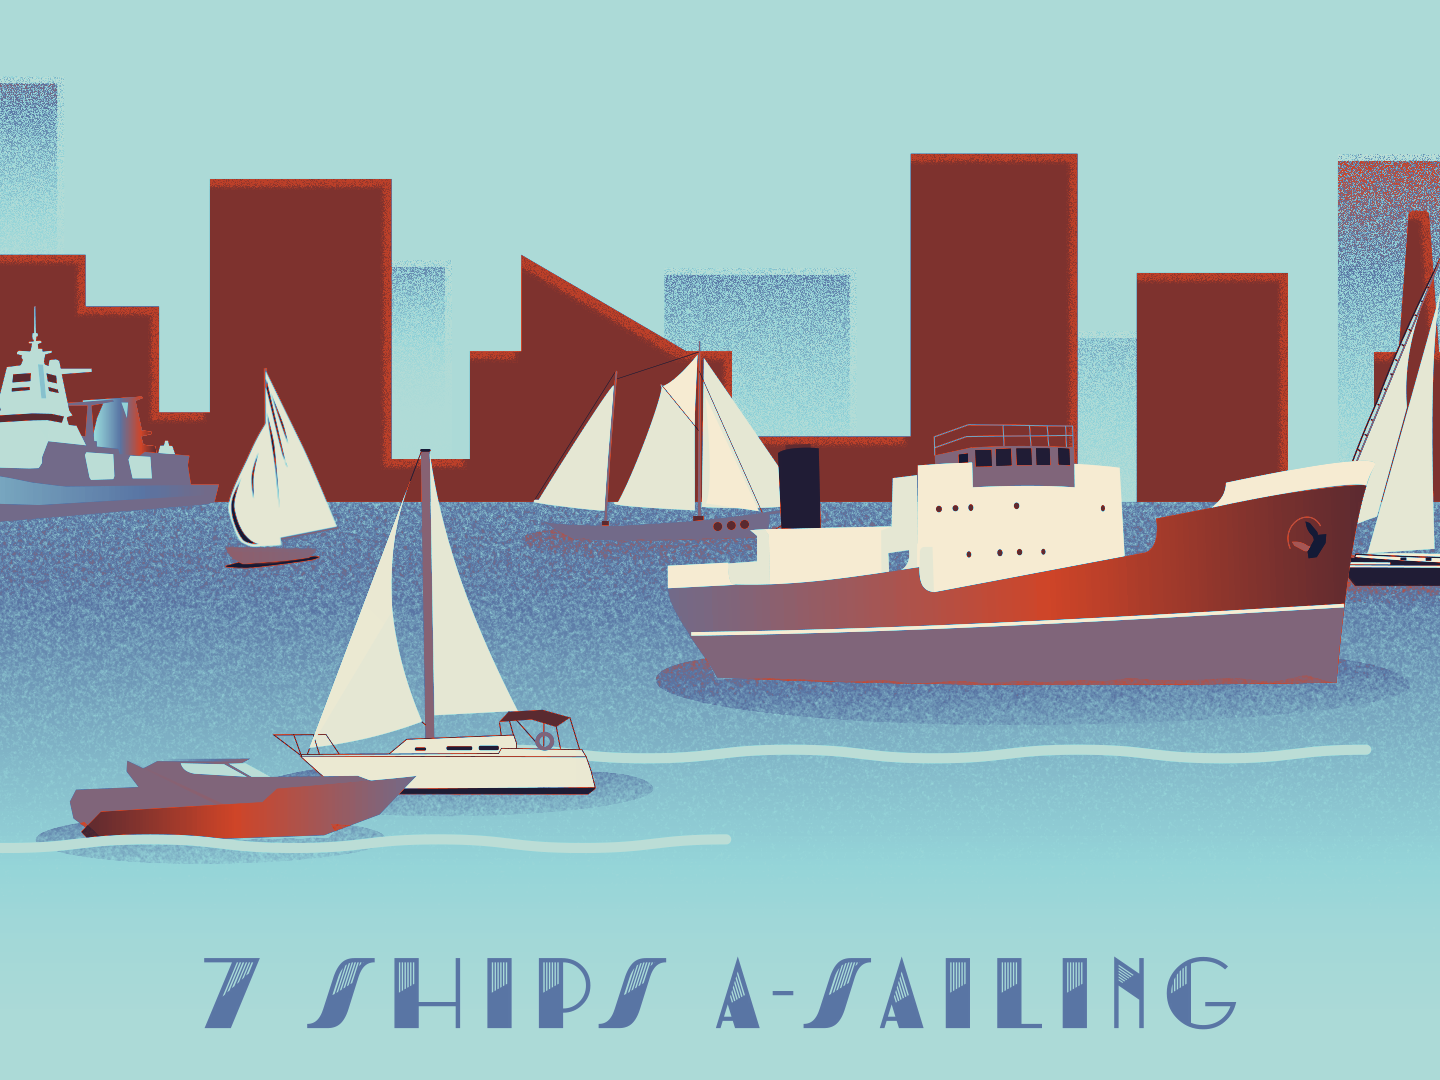 7th Day of Bmore - 7 Ships A-Sailing sail ships boat harbor holiday christmas baltimore bmore illustation 12 days 12 days of christmas